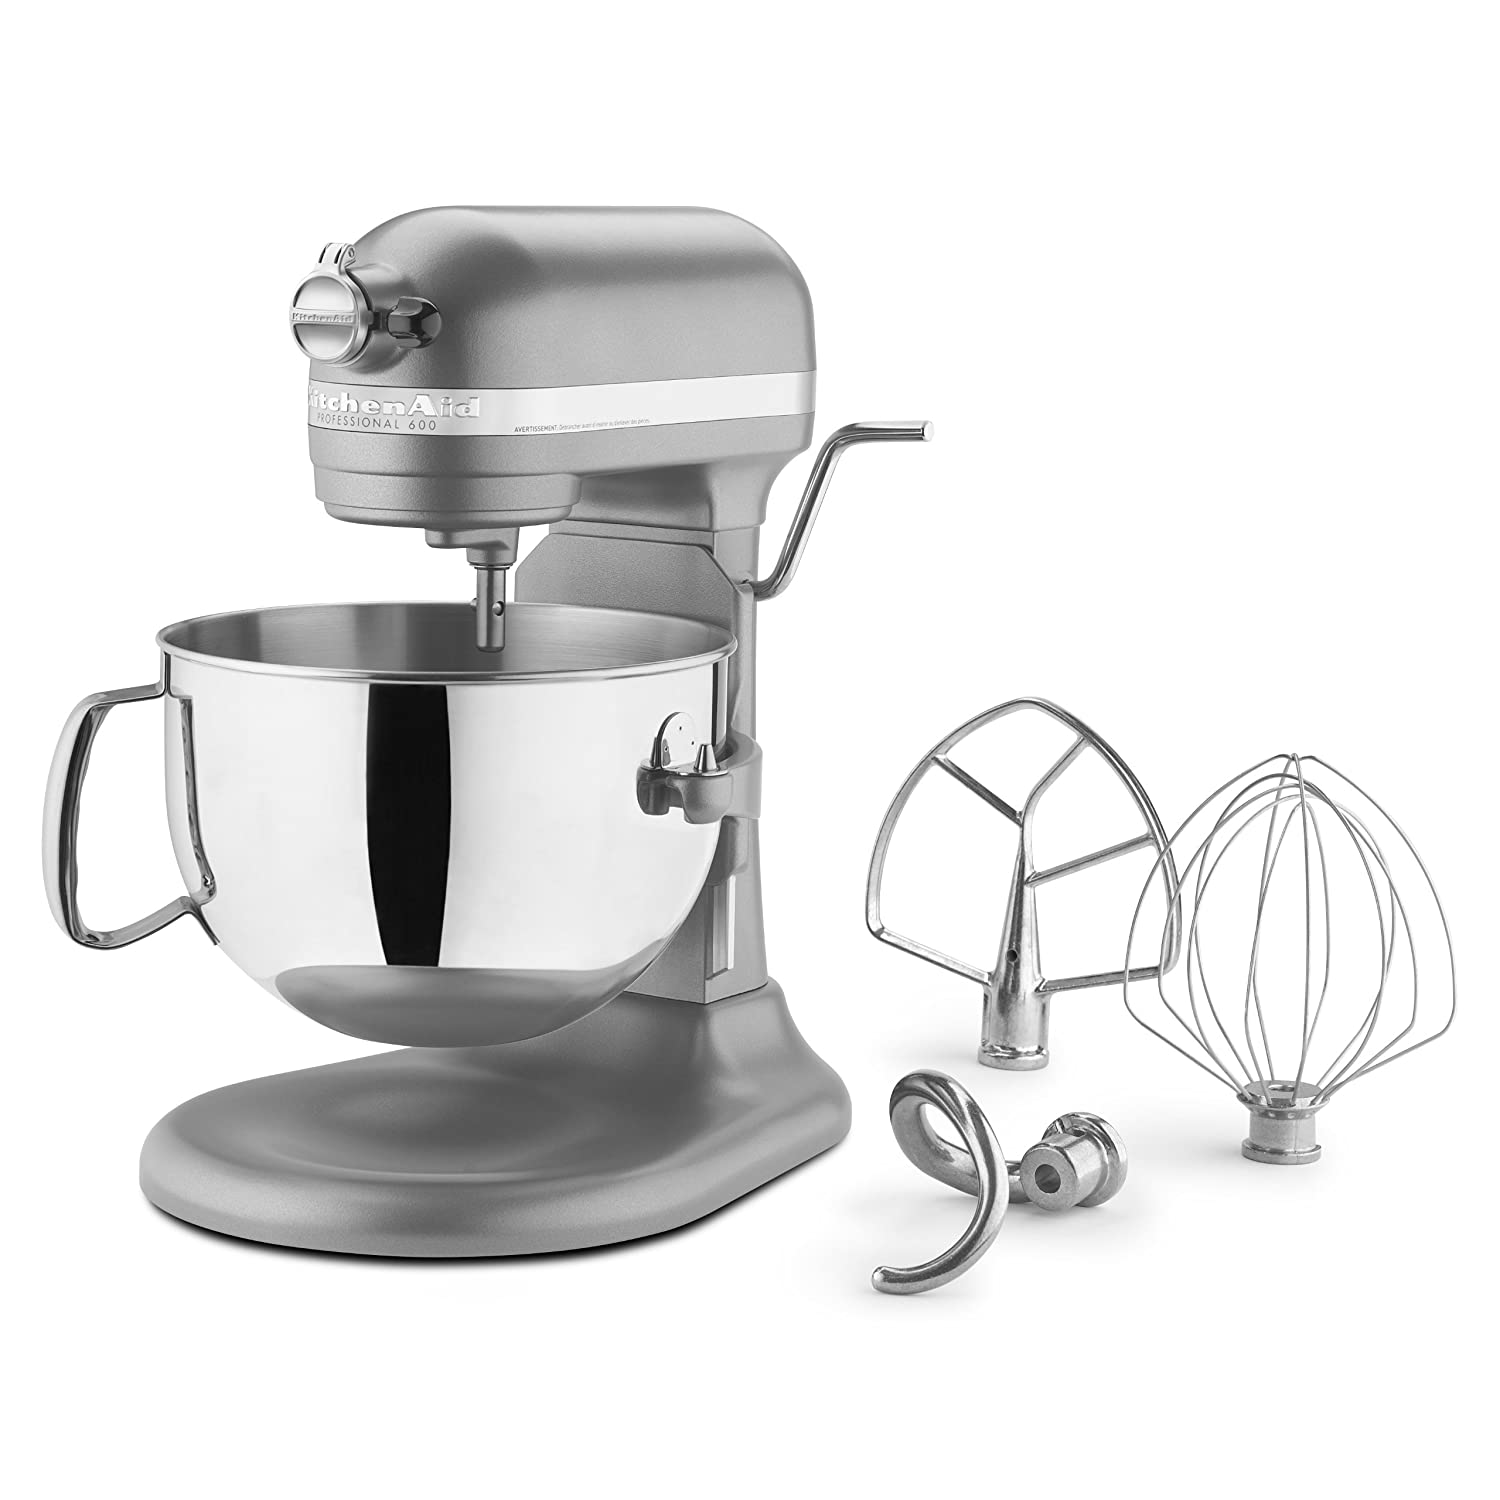 Kitchen Aid Kitchenaid Kp26m1psl Vs Kitchenaid Ksm150psob